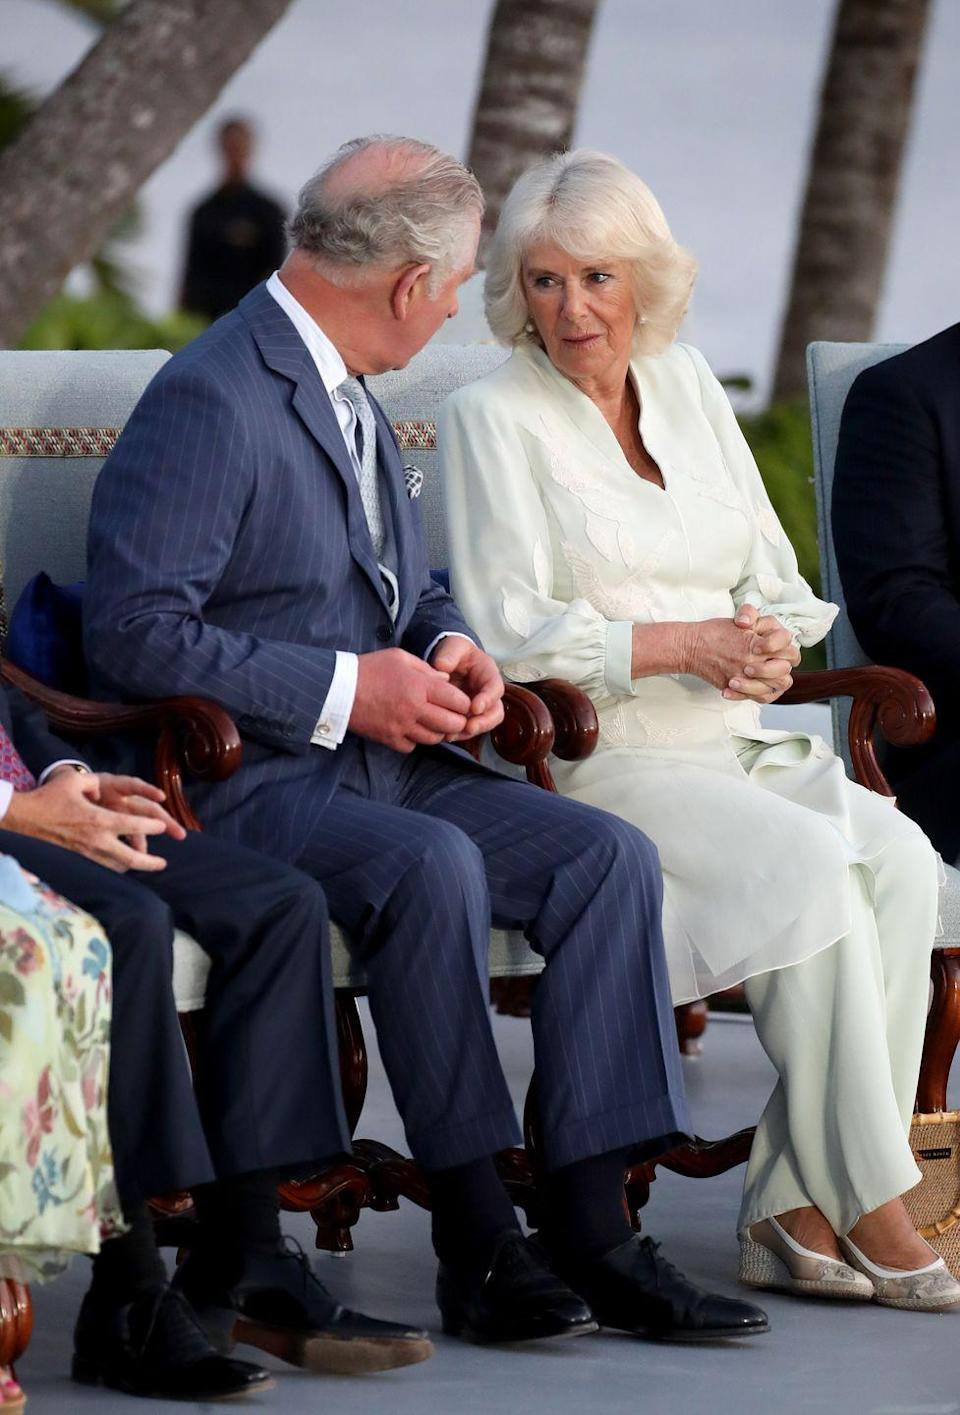 <p>For a celebration at Pedro's Castle in Grand Cayman, the Duchess of Cornwall wore mint green wide leg pants and caftan with a white chiffon overlay. </p>